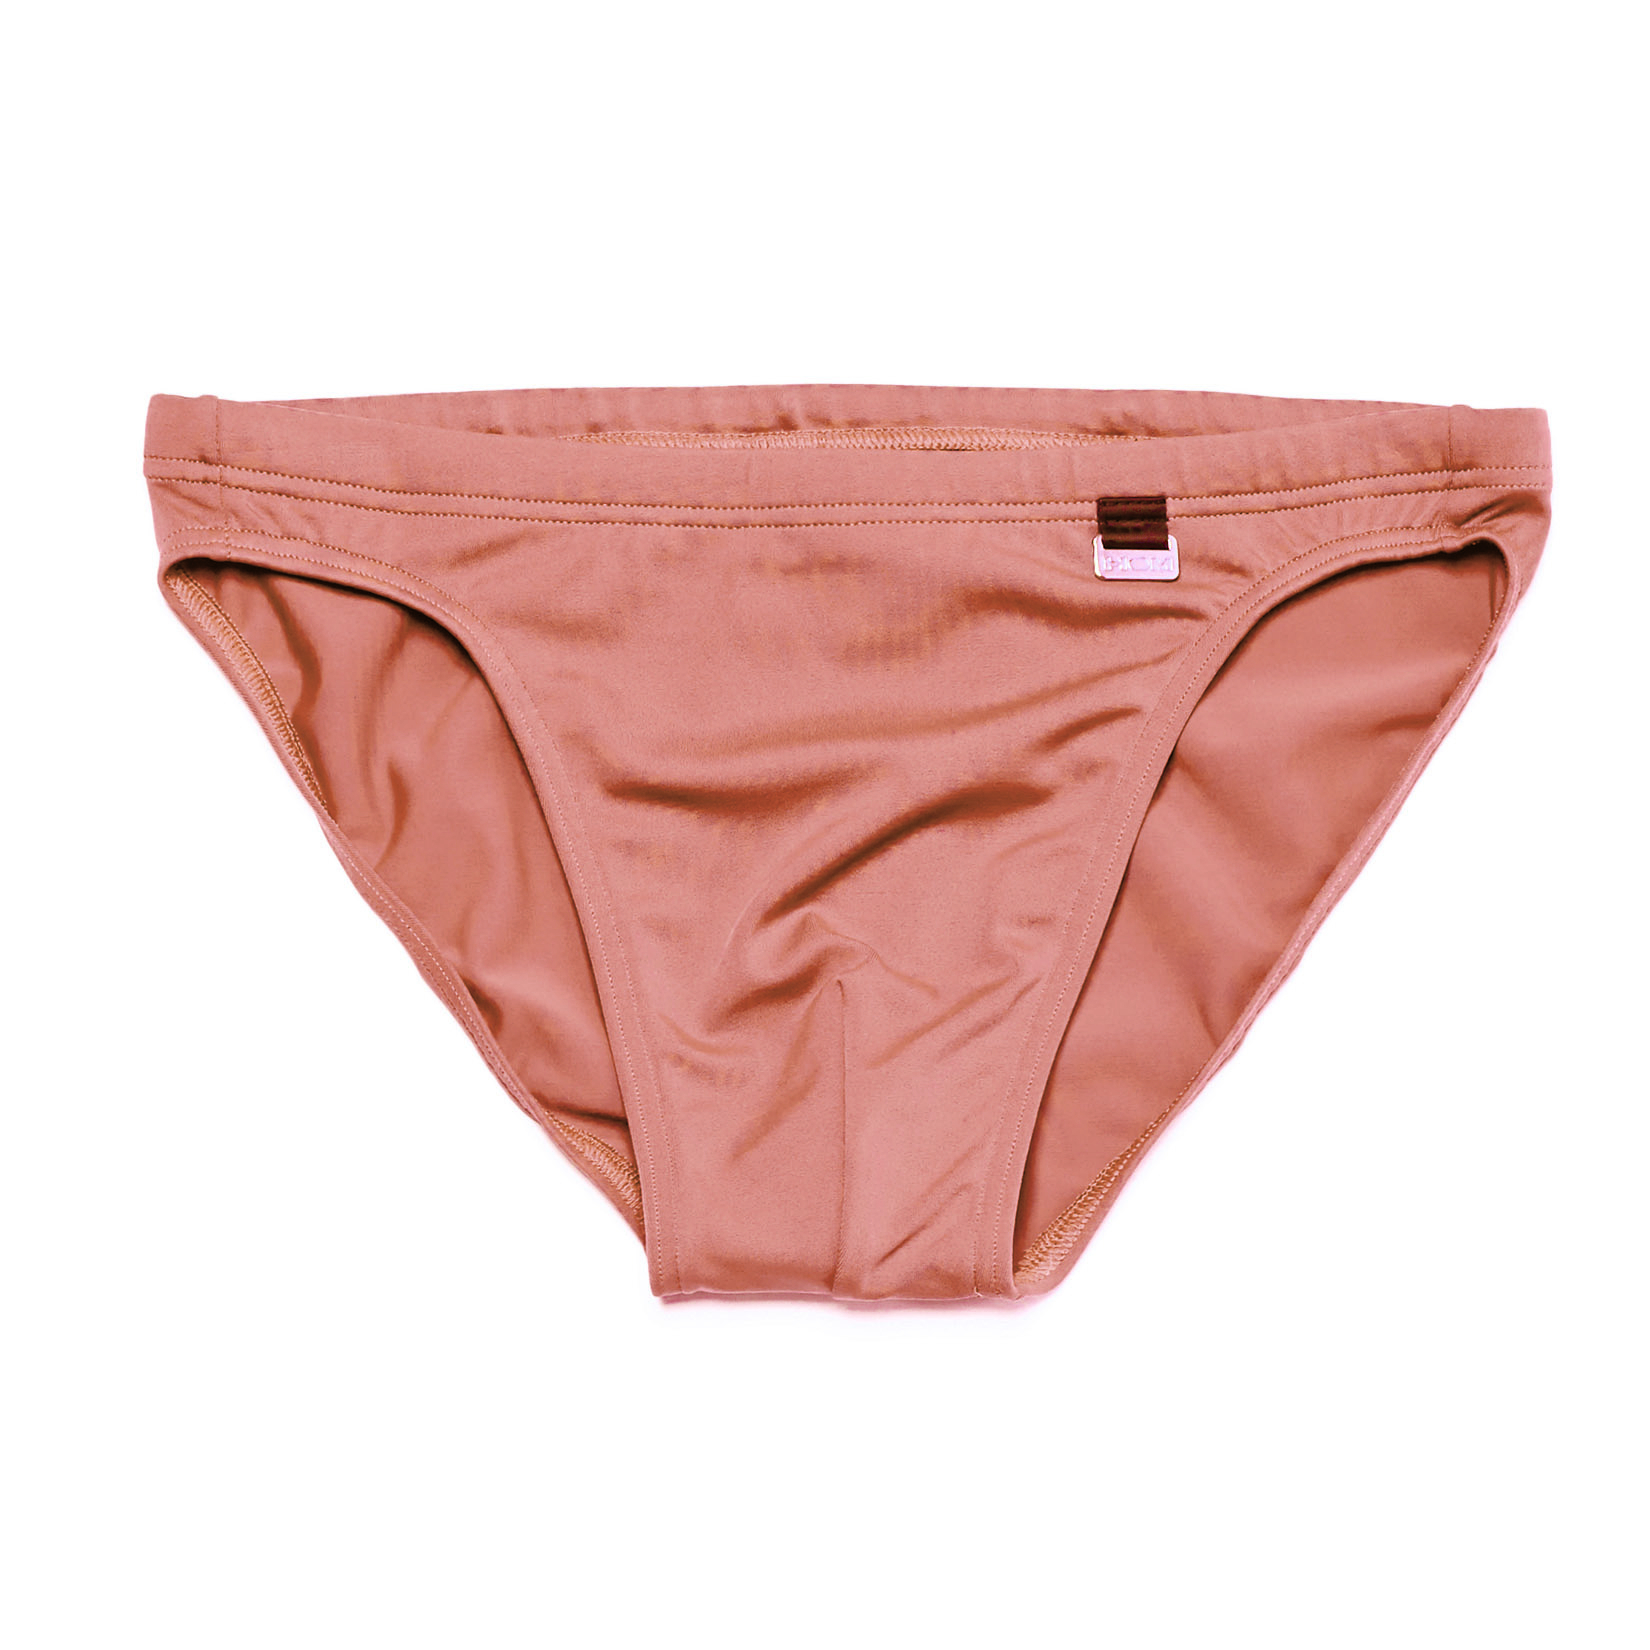 cf459d2a16c04 Micro Swim Brief